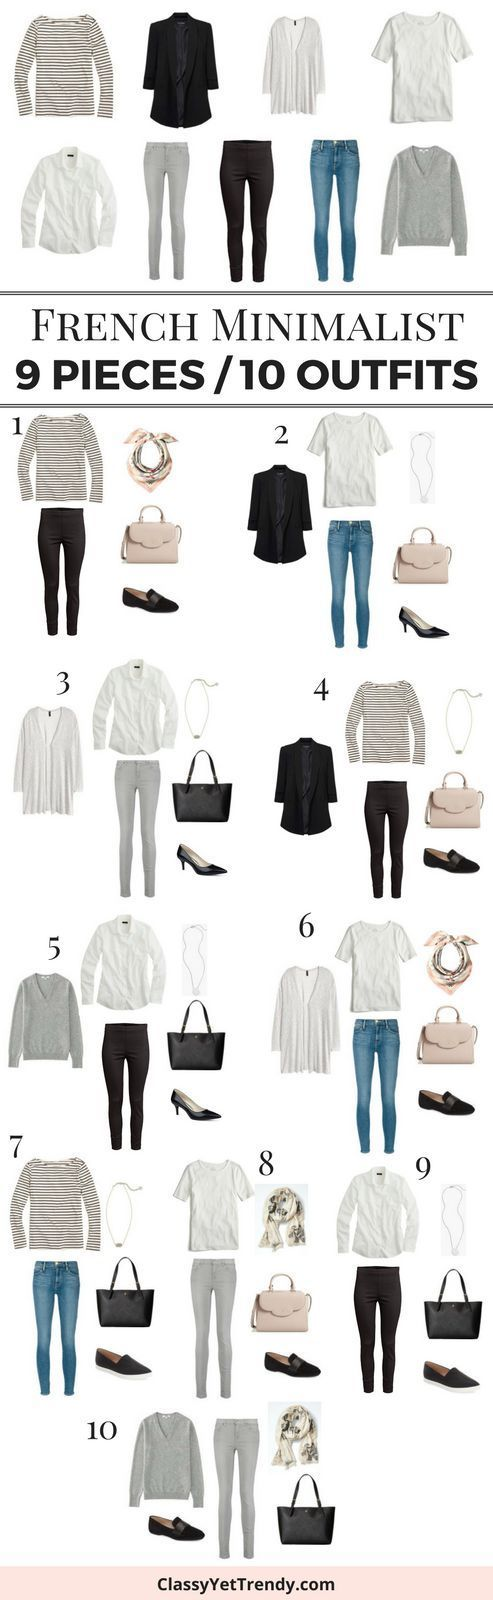 9 Pieces / 10 Outfits (French Minimalist Style) – Classy Yet Trendy